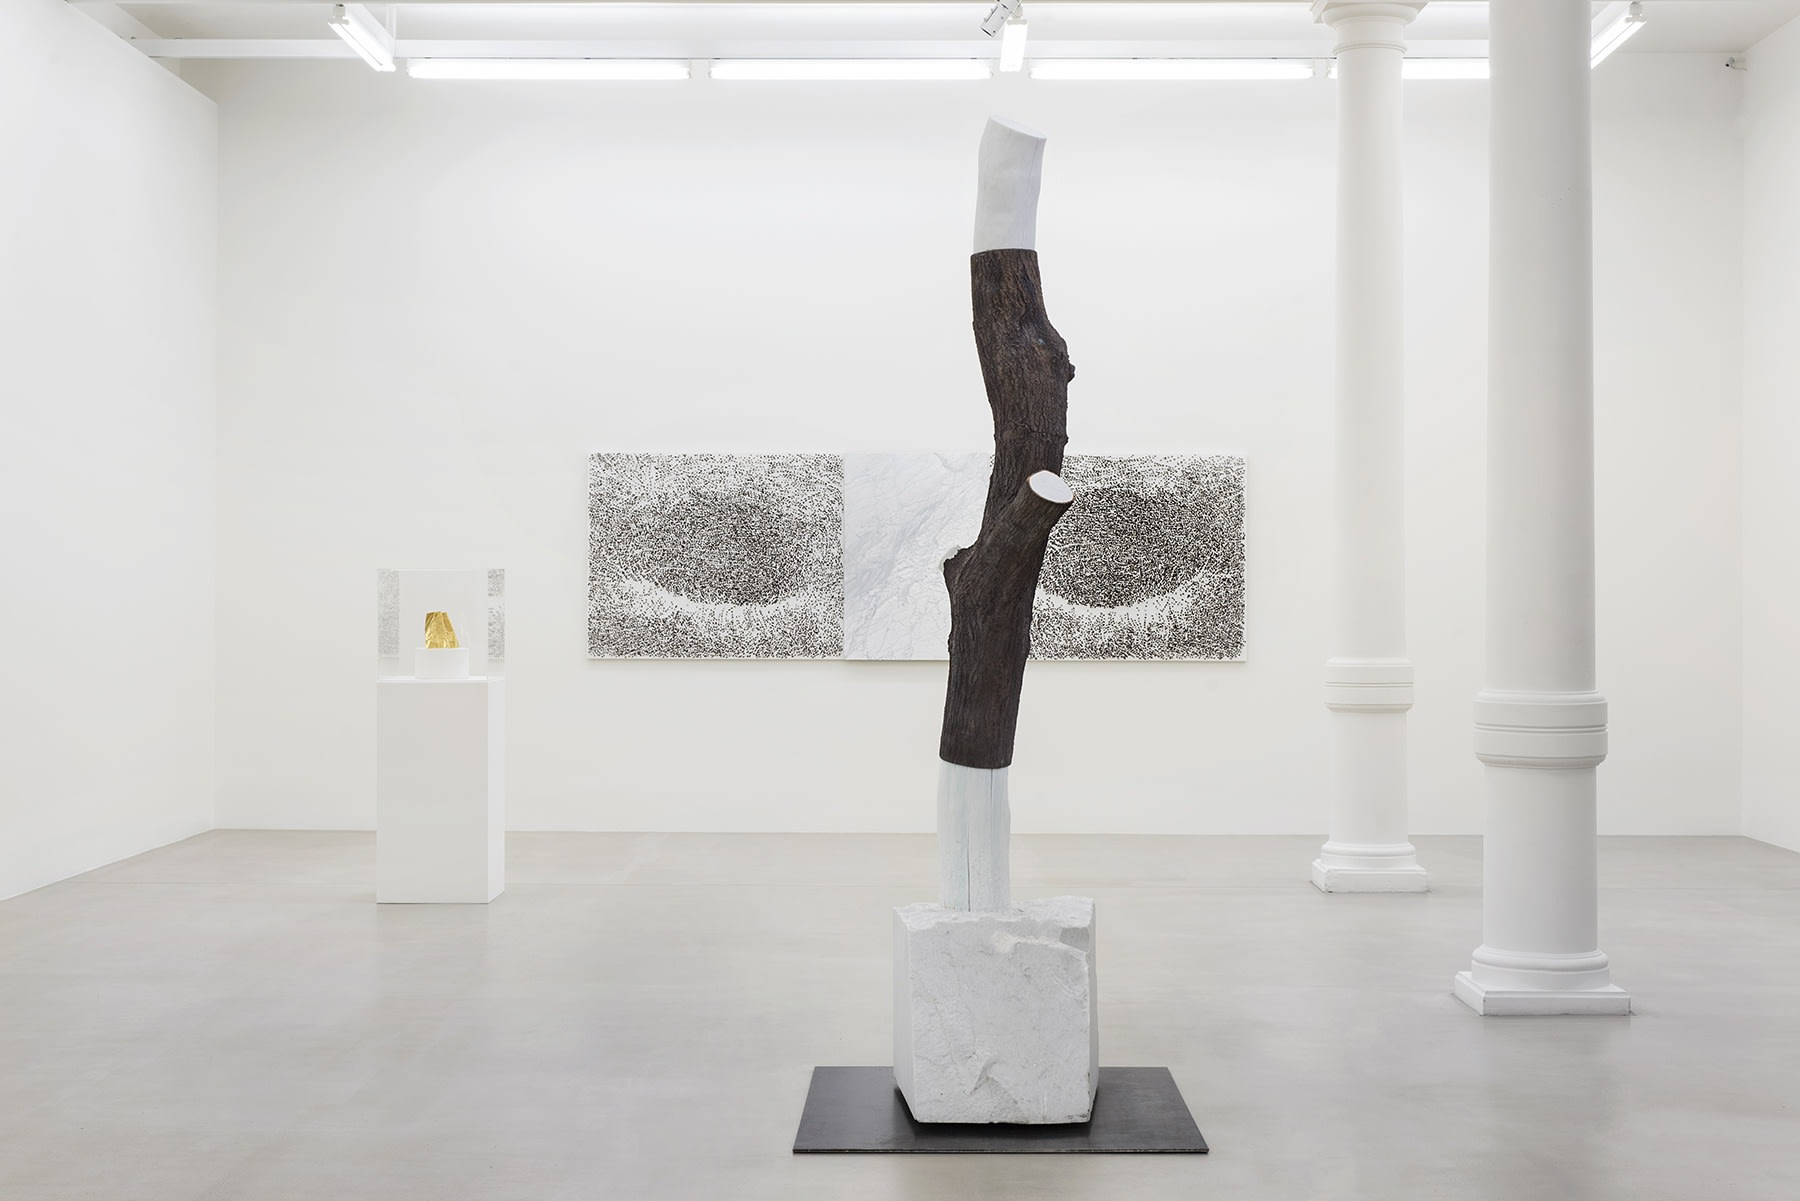 A sculpture of the cut section of a tree trunk sits in the center of the gallery.